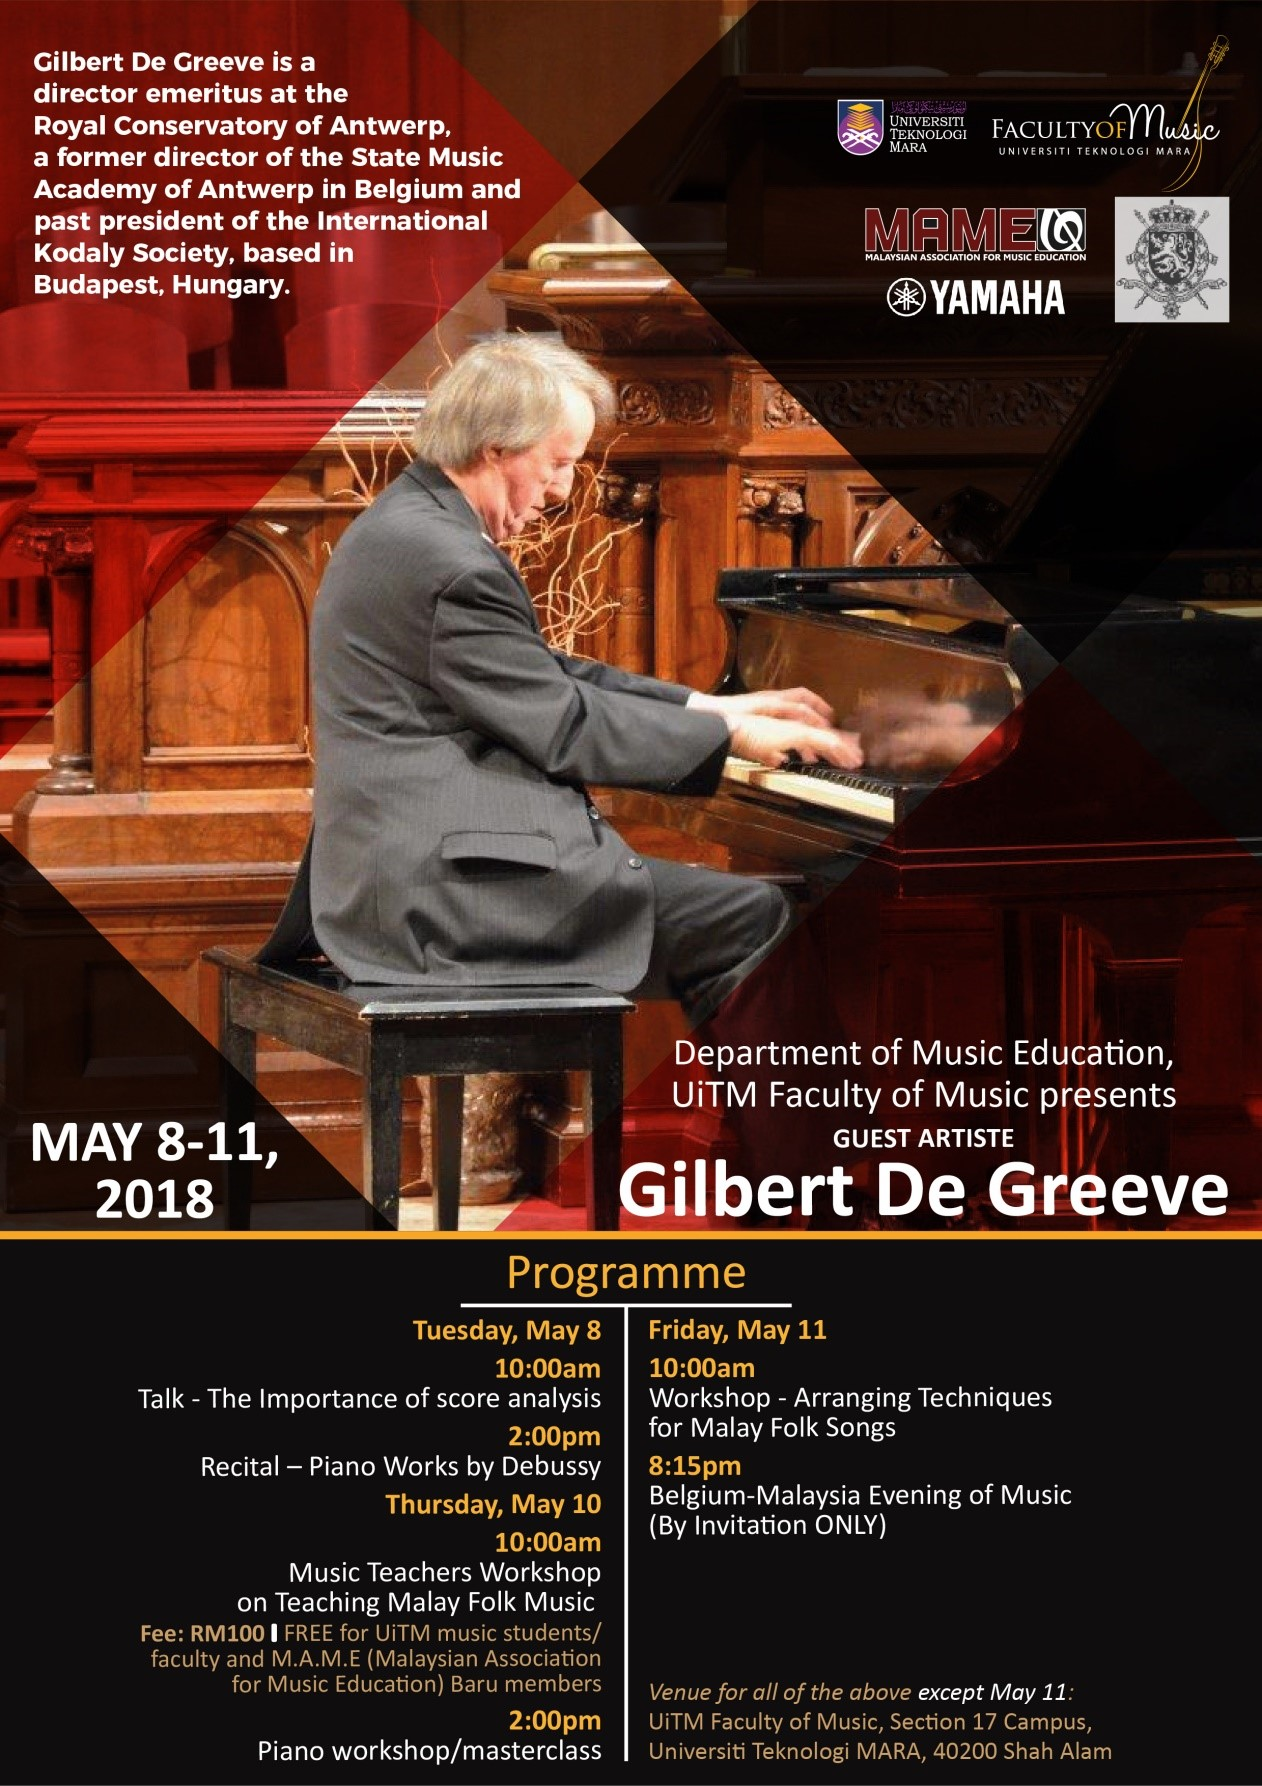 PIANO MASTERCLASSES, WORKSHOPS AND CONCERTS BY GILBERT DE GREEVE (BELGIUM)